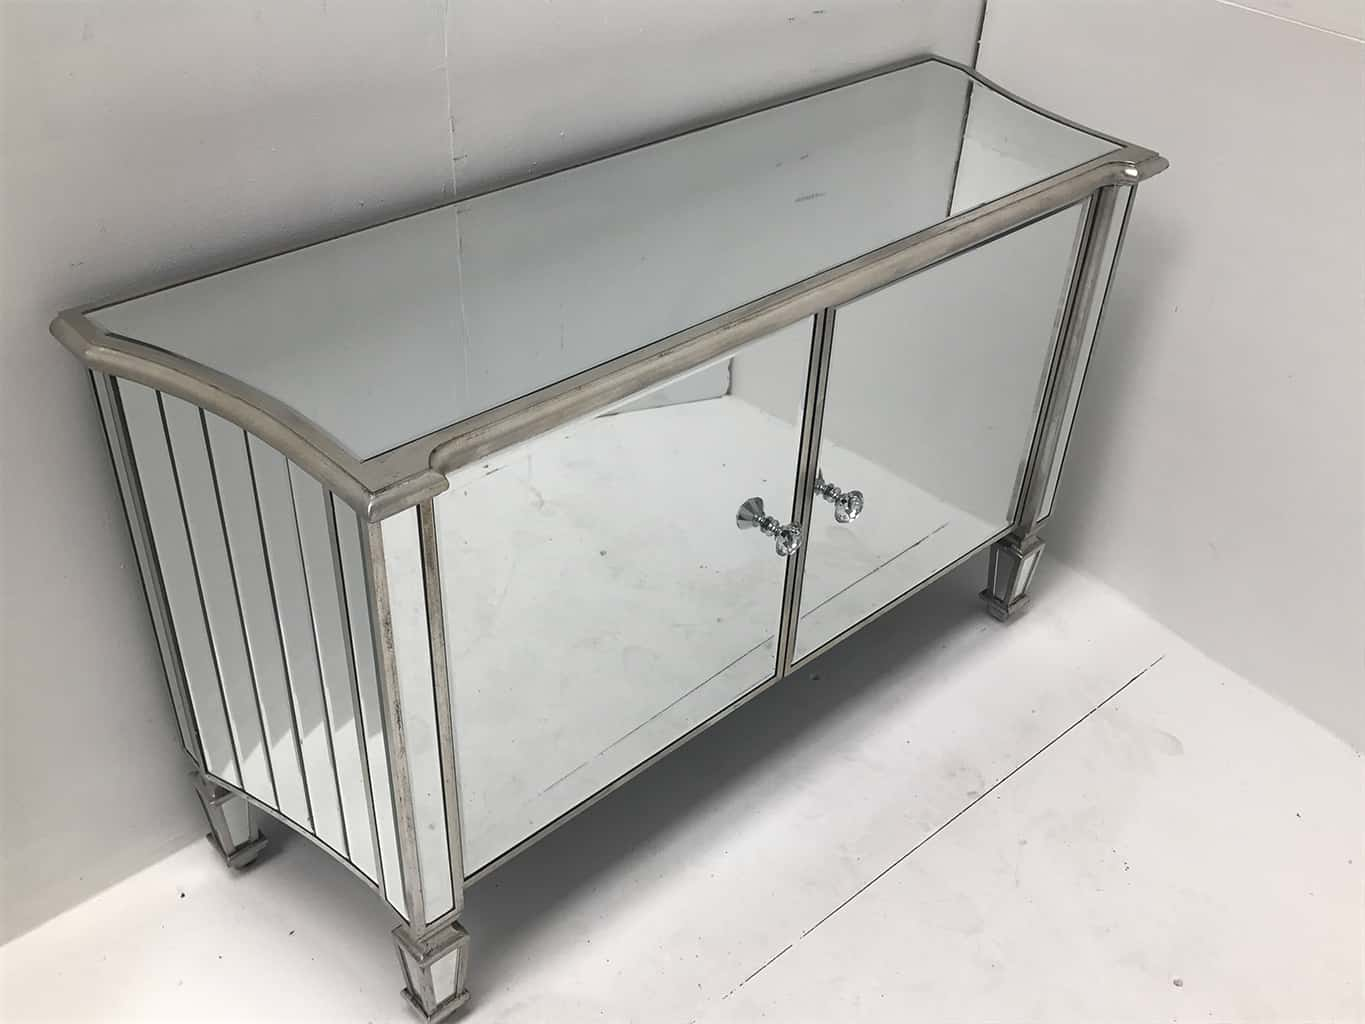 Marbella mirrored sideboard with 2 cupboard doors. All mirrored panels are bevelled and the ends are curved, crystal knobs, wood and mirror, antiqued silver